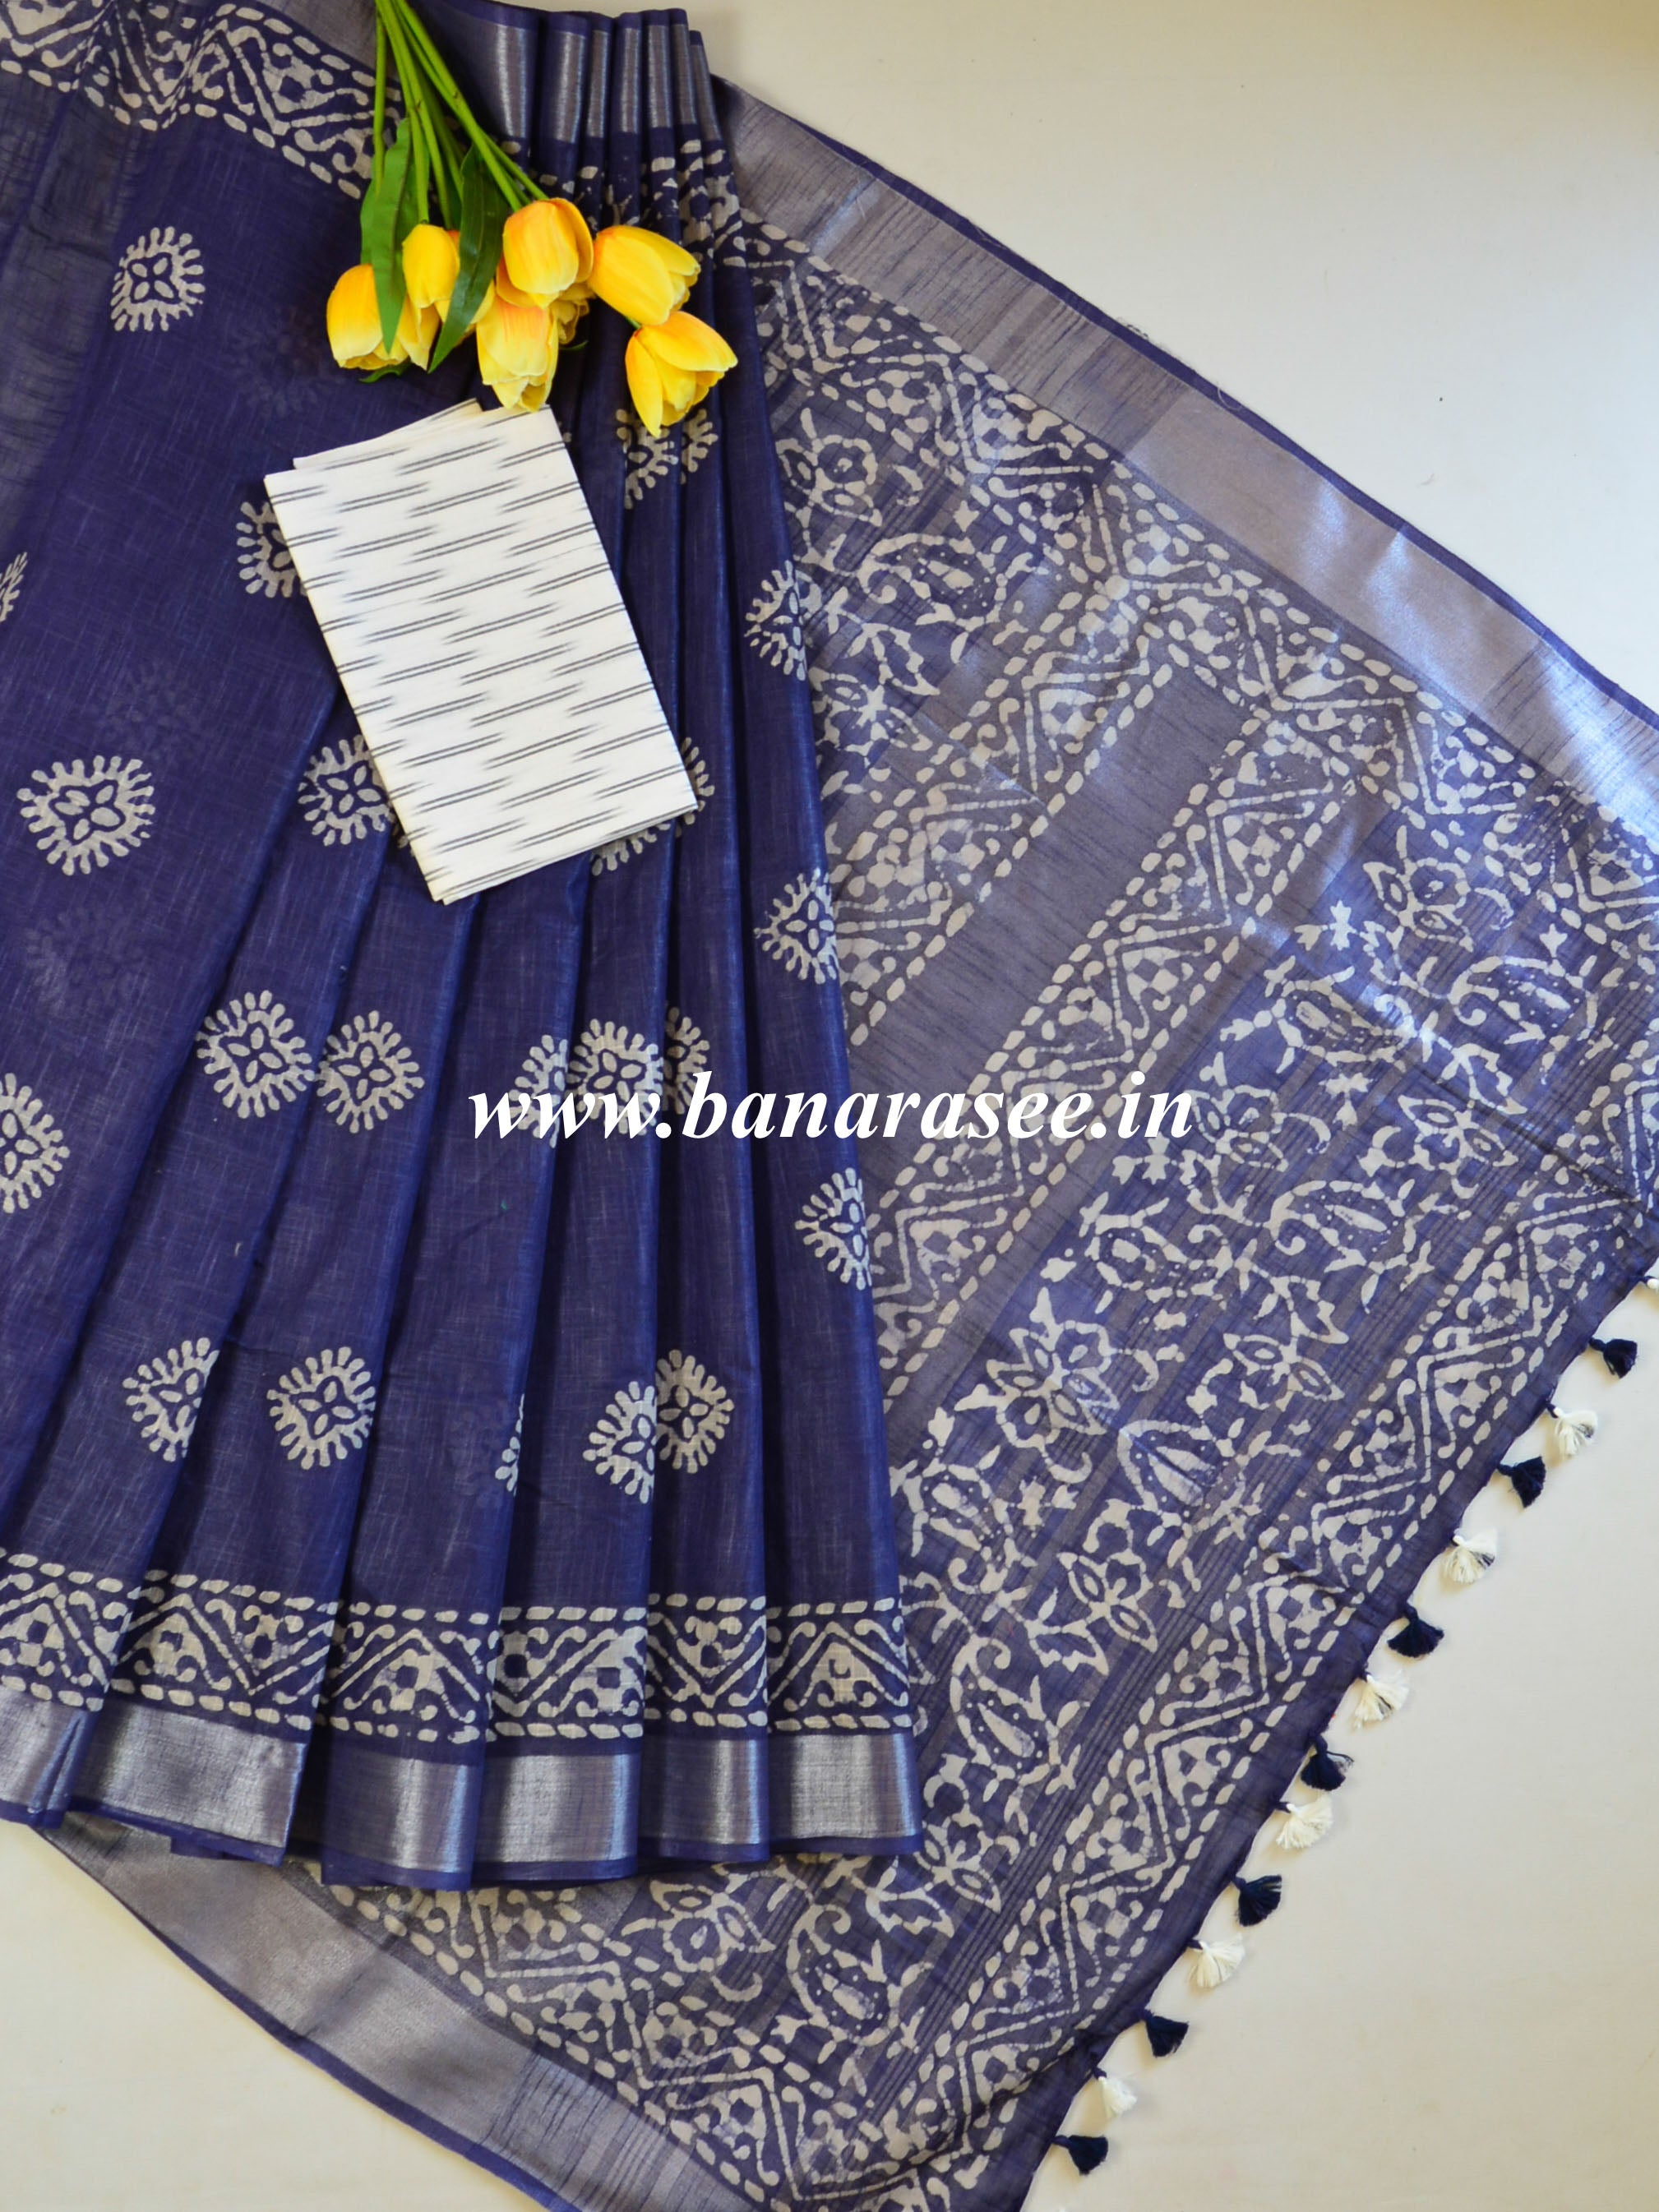 Bhagalpur Handloom Pure Linen Cotton Hand-Dyed Batik Pattern Saree & Ikkat Blouse-Deep Blue